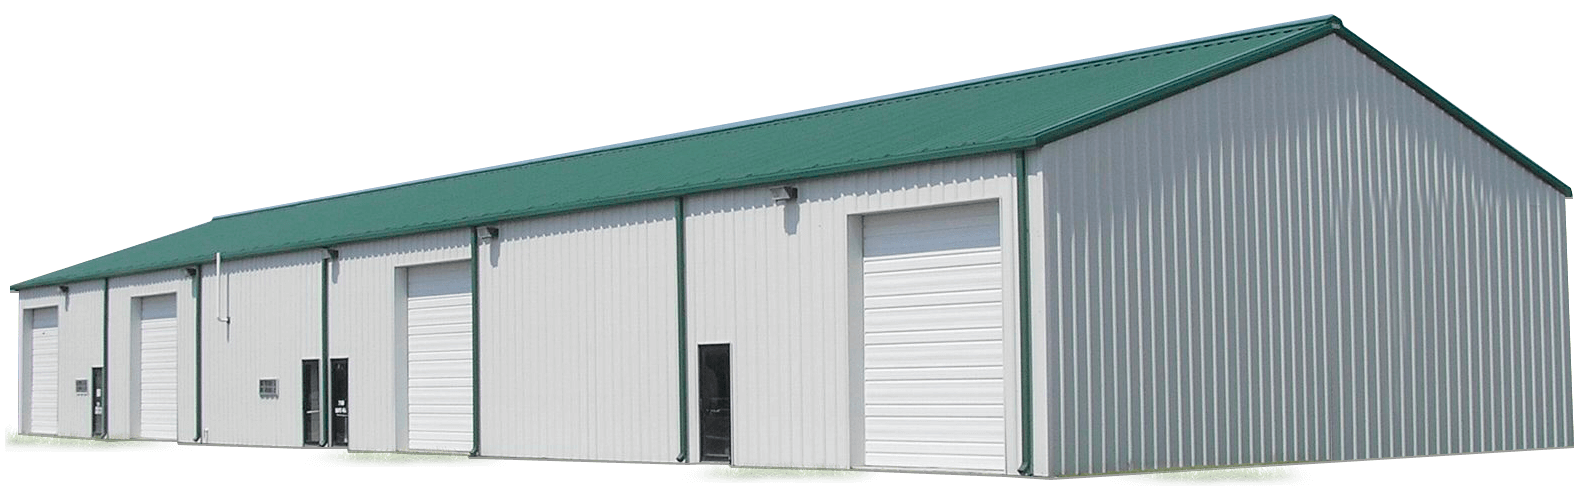 prefabricated-metal-building-carport-central